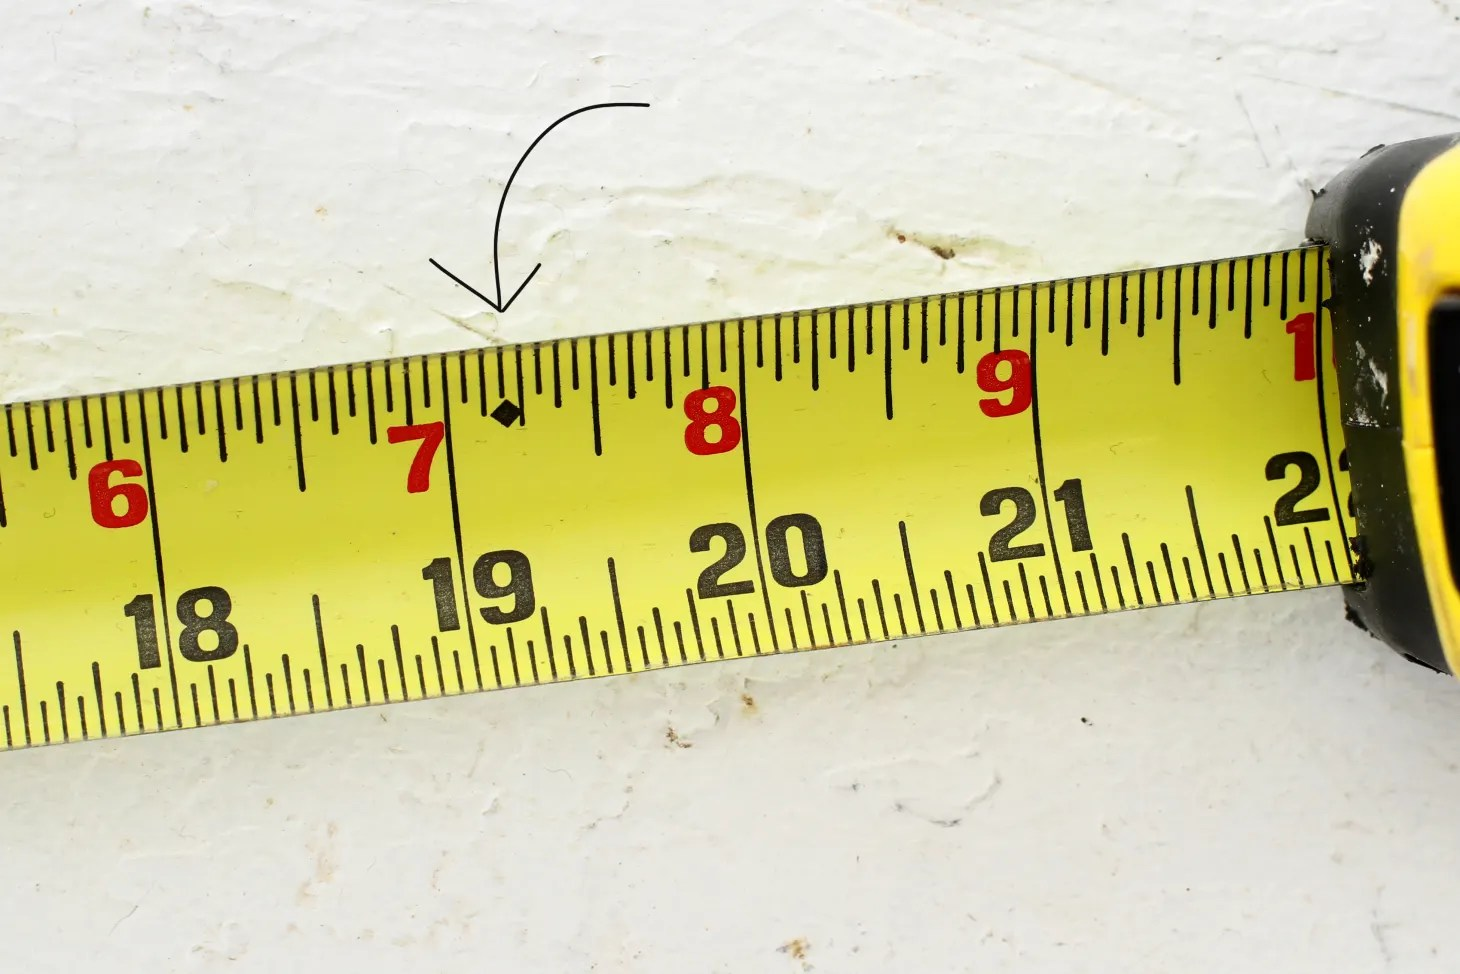 How To Read A Tape Measure